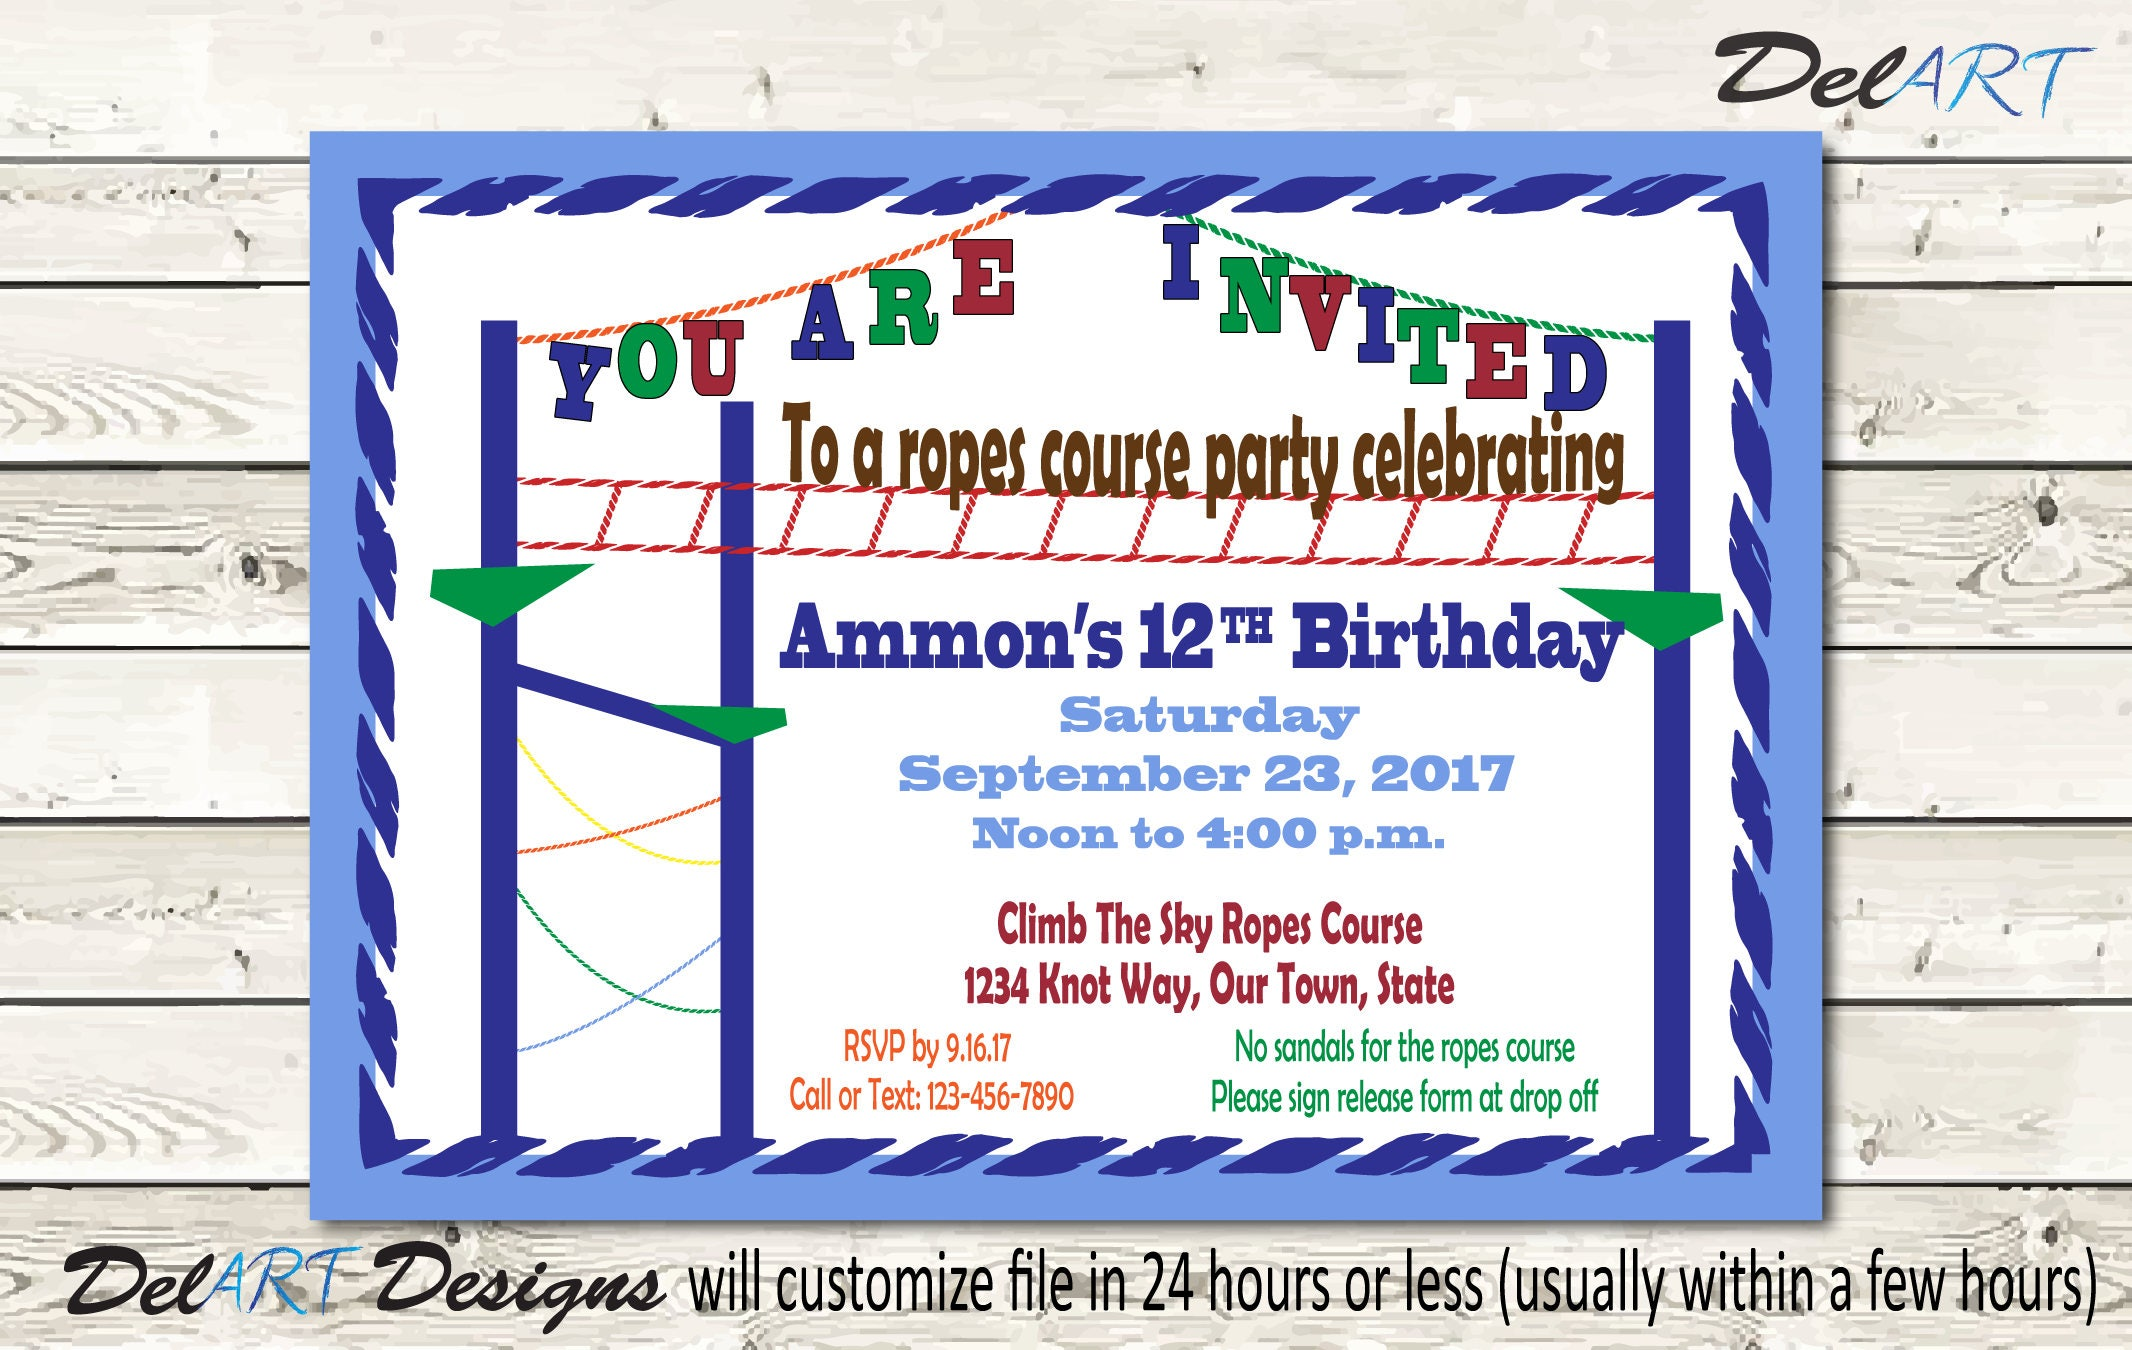 Ziplining scrapbook ideas - Ropes Course Birthday Party Invitation Invite Or Save The Date Digital Custom File 5 X 7 4 X 6 Inch Jpg Or Pdf Files